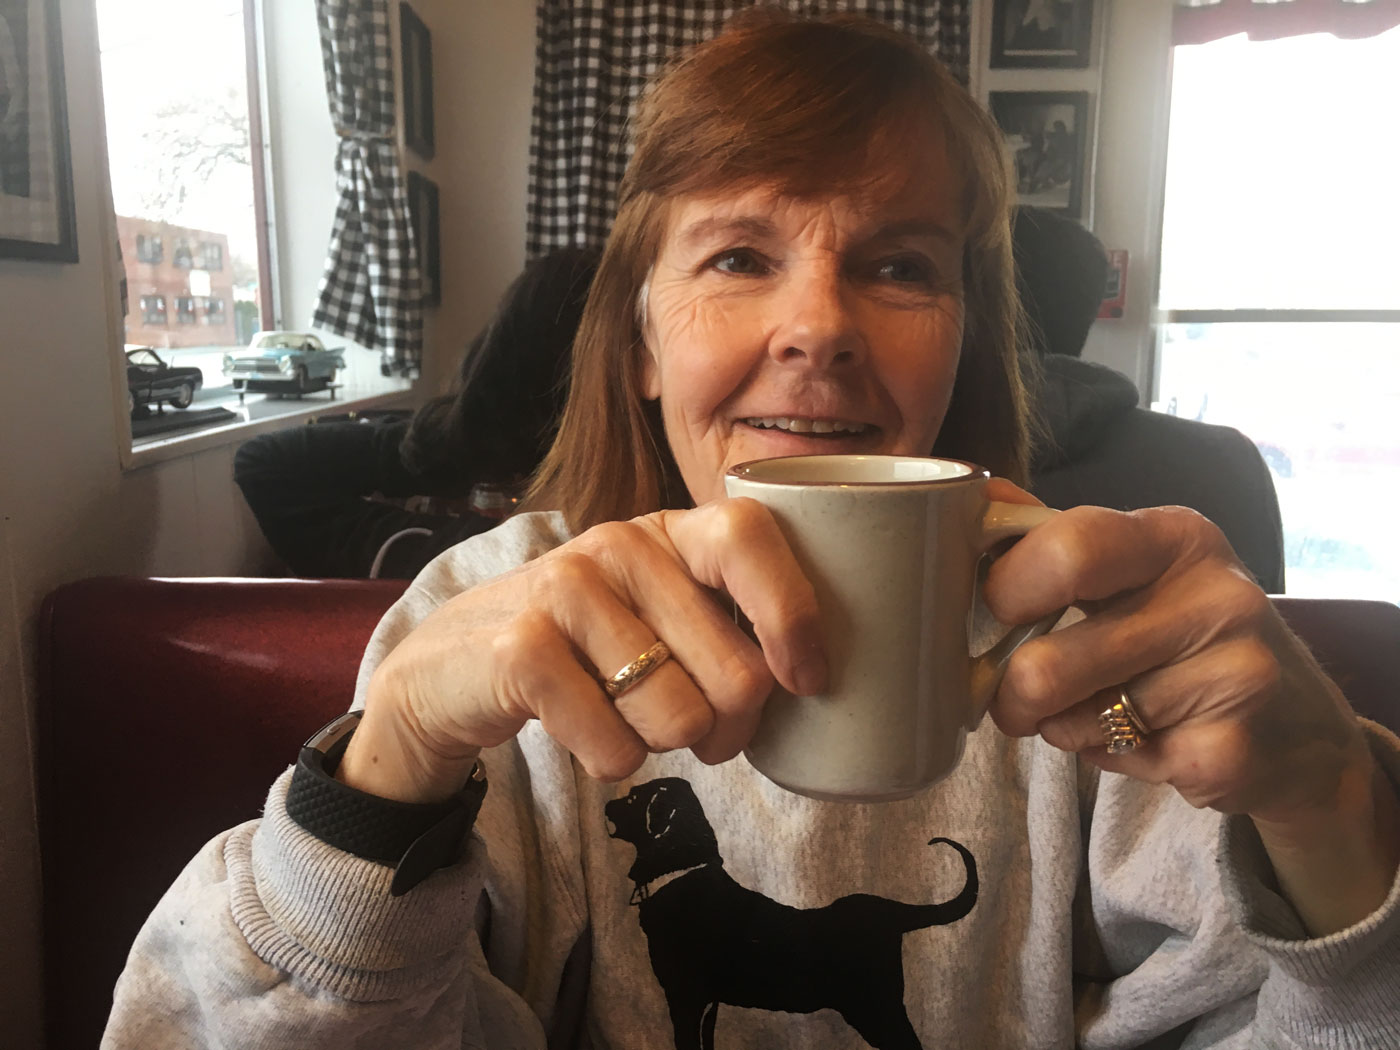 Morning coffee at Pazi's Place on Taunton Avenue